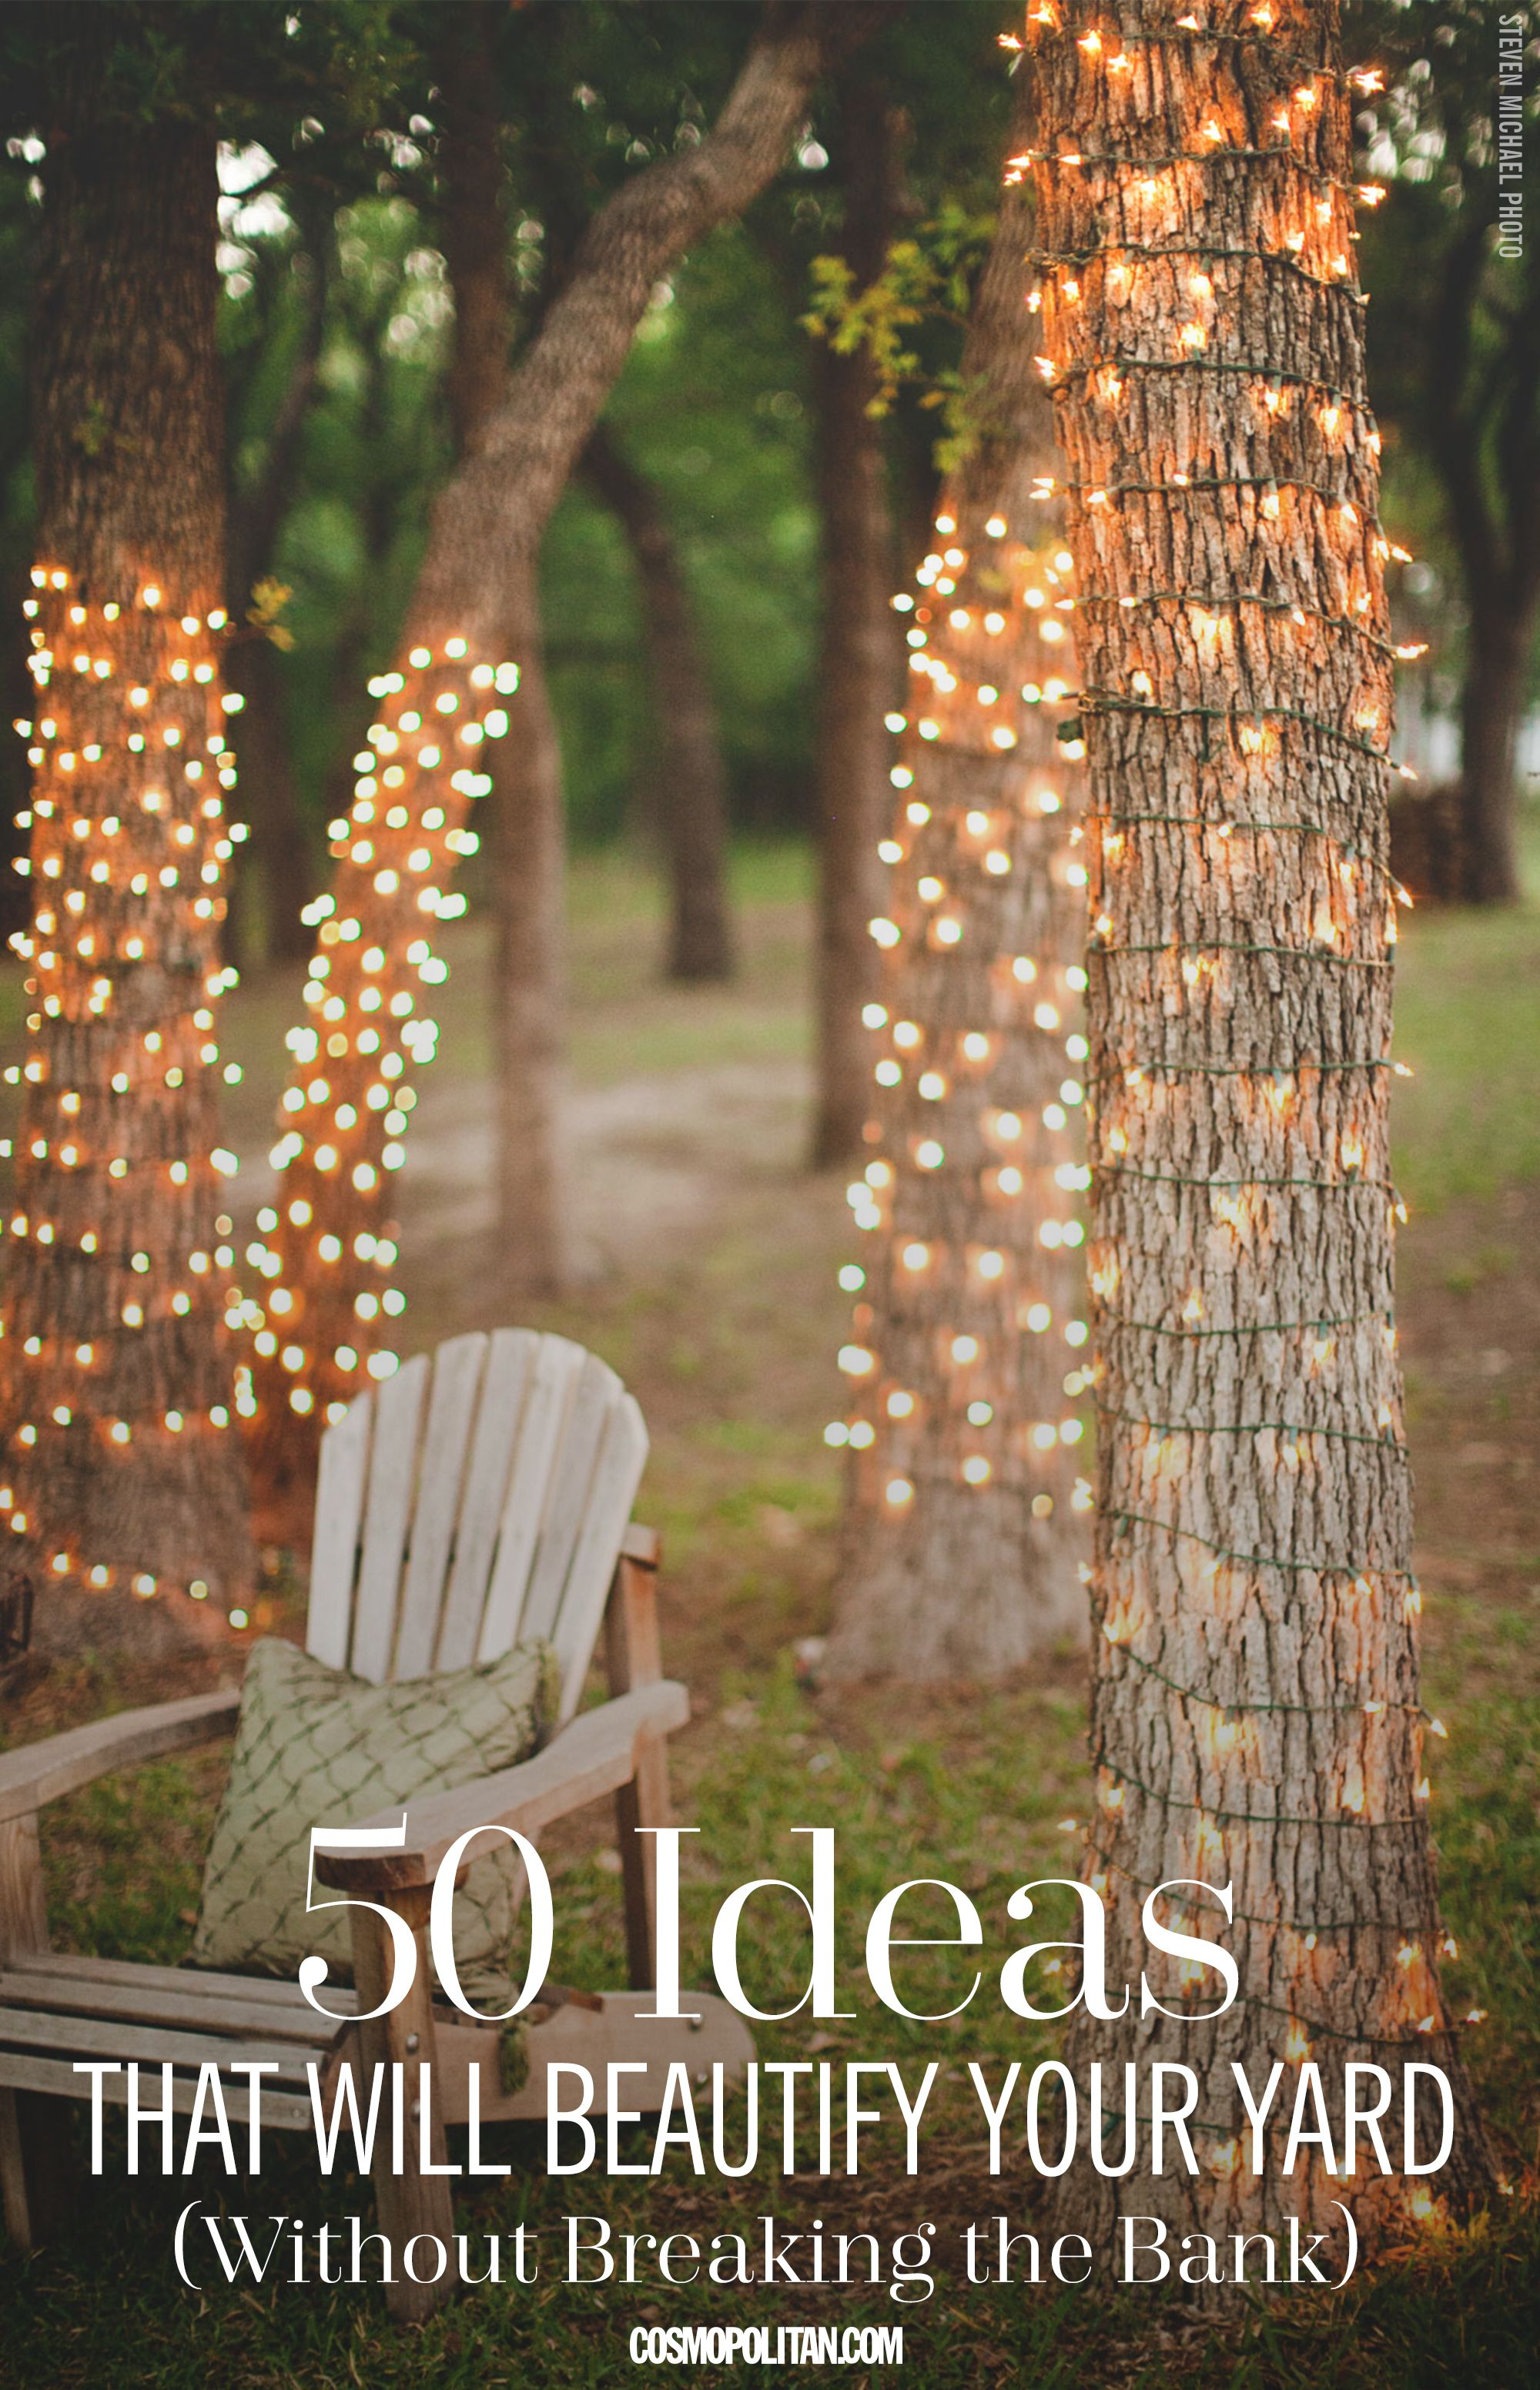 50 ideas that will beautify your yard without breaking the bank